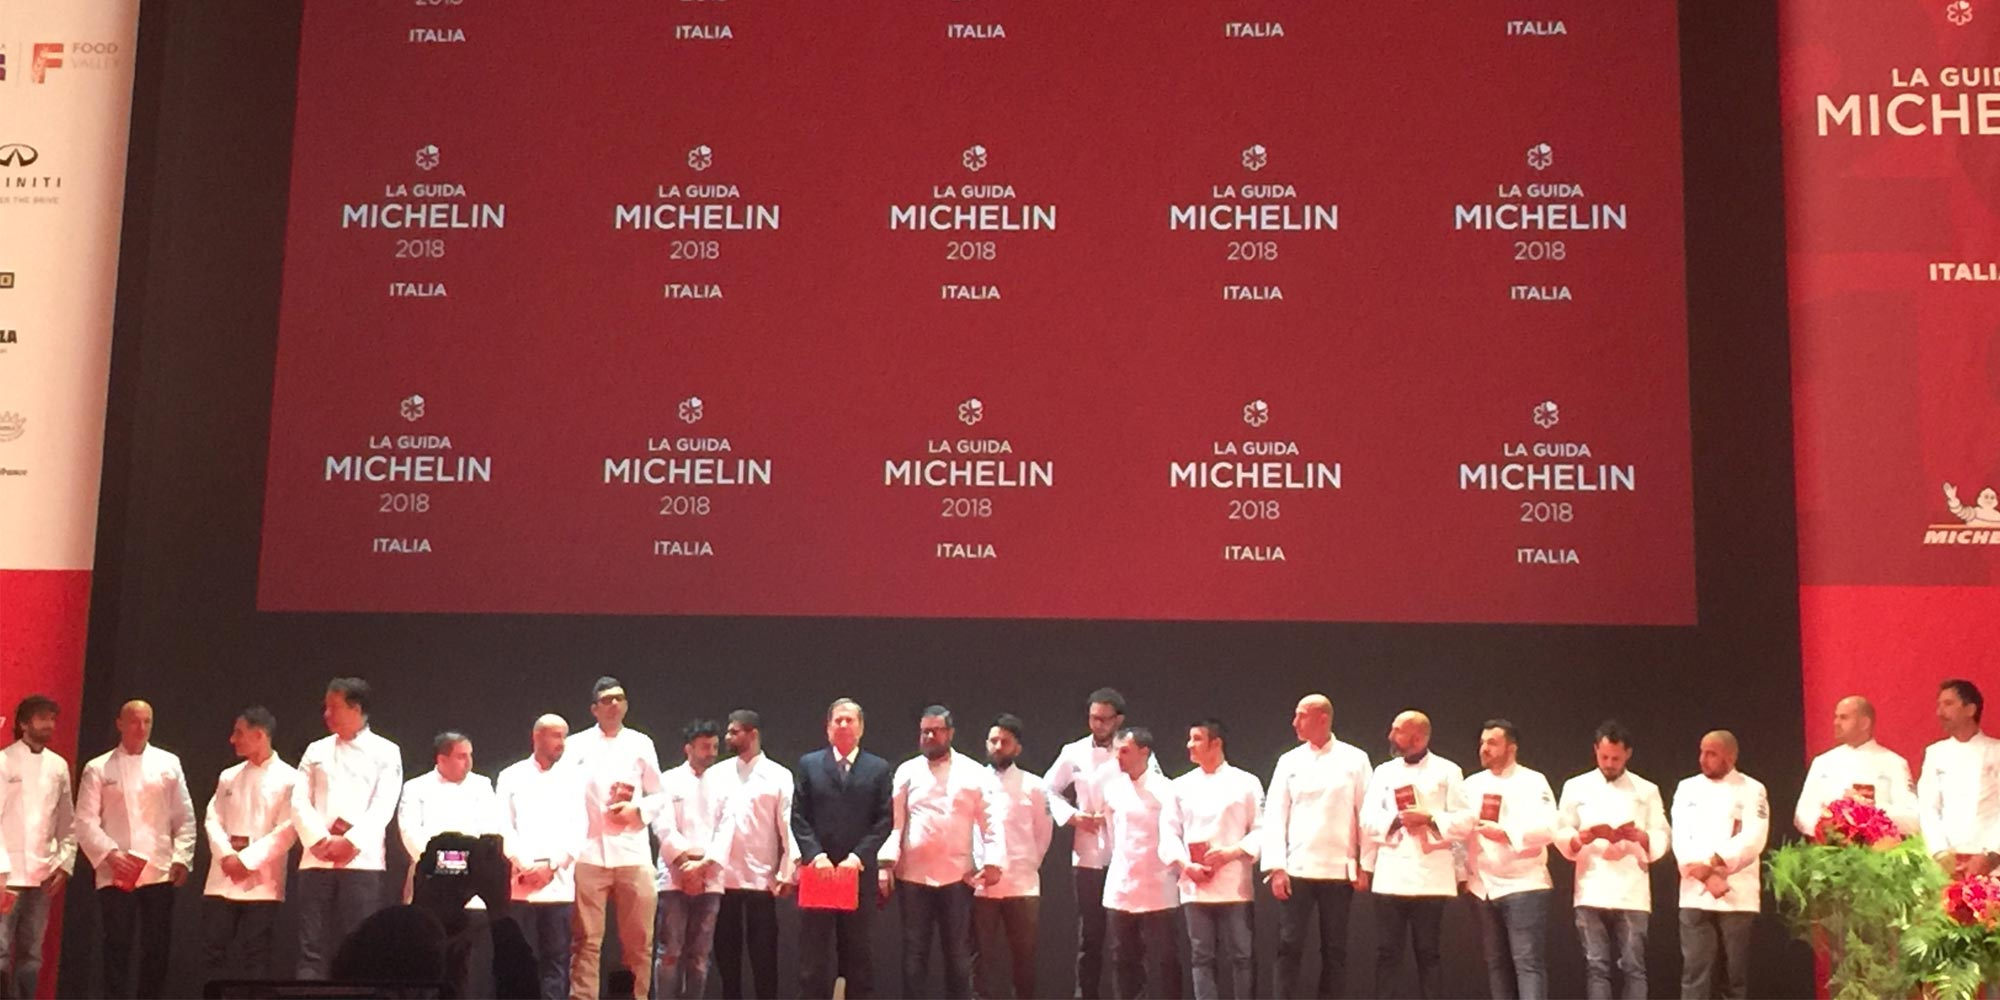 , 2018 MICHELIN GUIDE, CRACCO HAS BEEN PENALIZED, Foodiestrip.blog